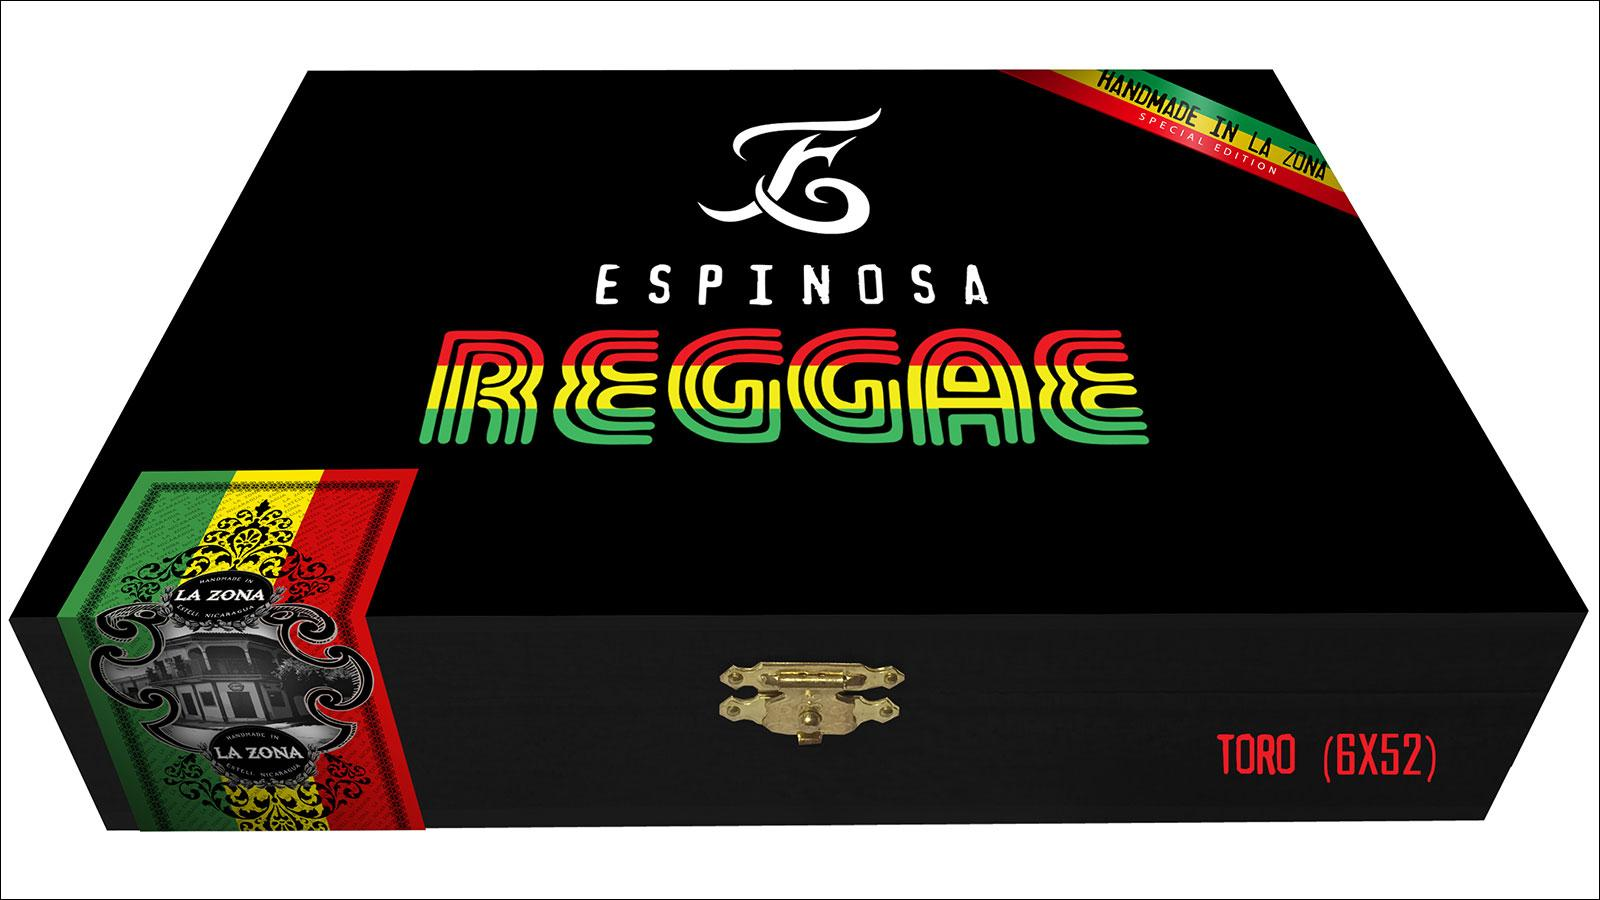 Espinosa Blends Jamaican Tobacco In New Cigars